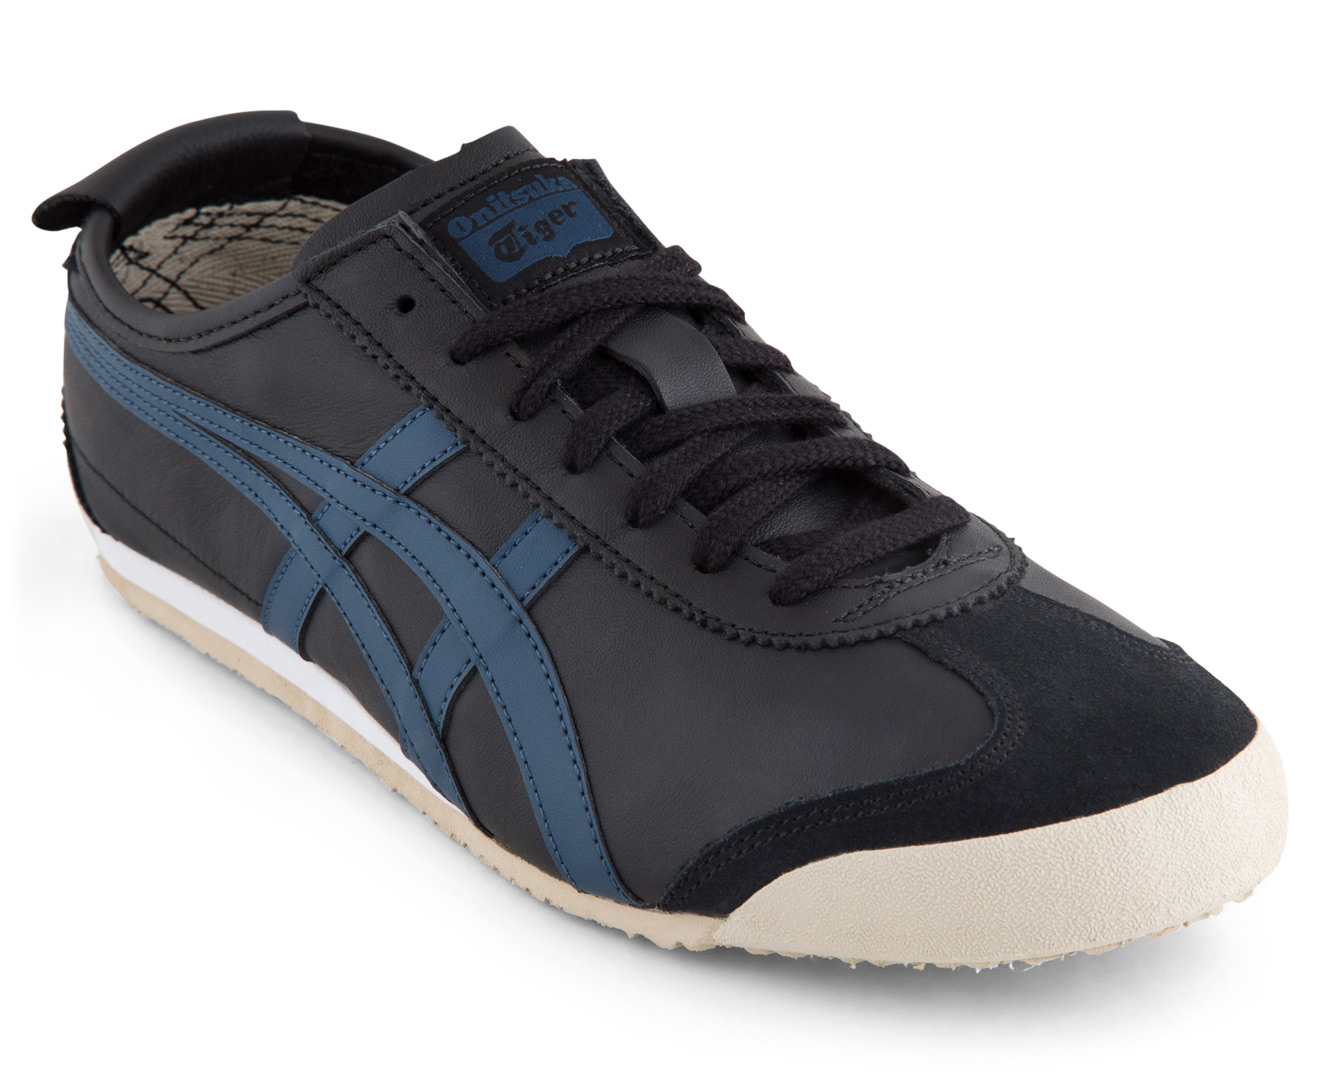 finest selection 674f4 4a5d9 Onitsuka Tiger Mexico 66 Shoe - Black/Poseidon